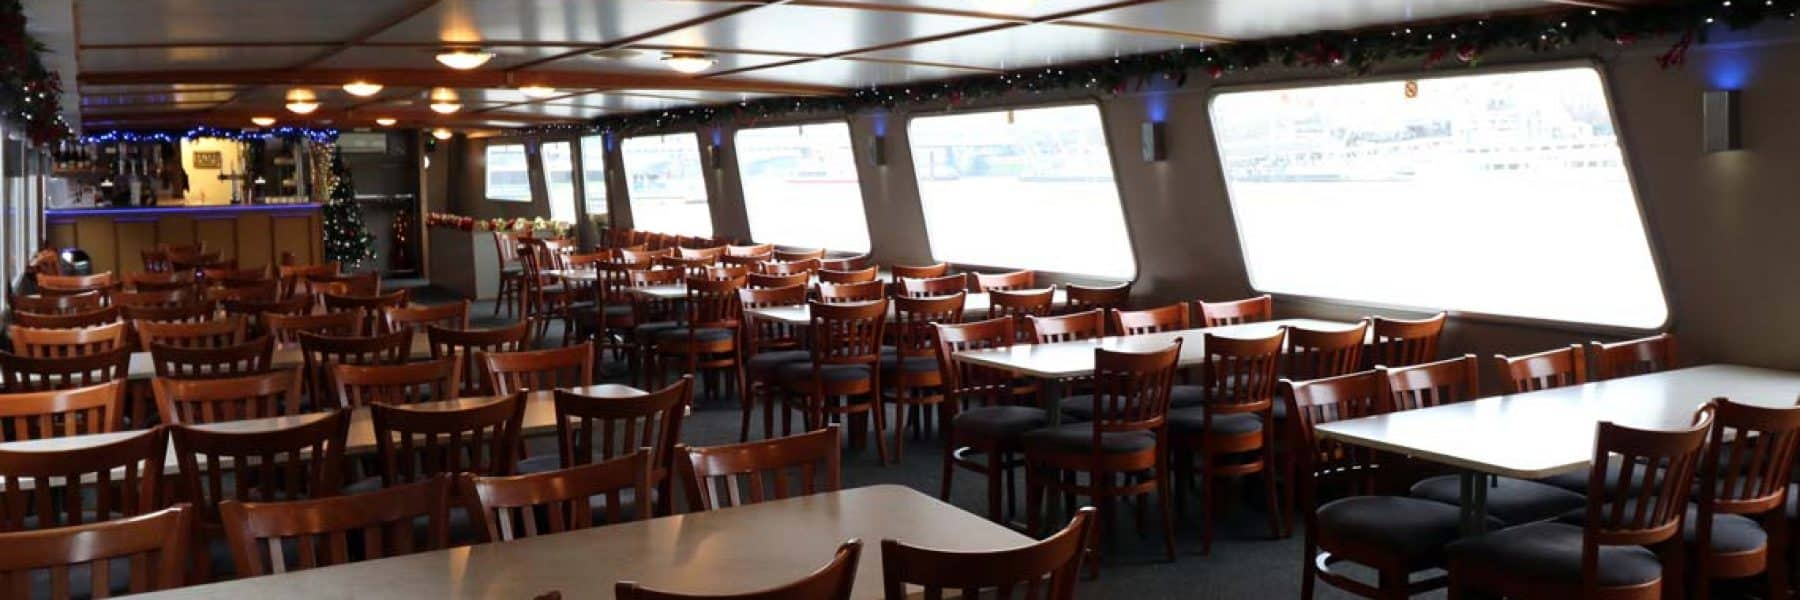 M.V Avontuur IV, Saloon | New Year's Eve